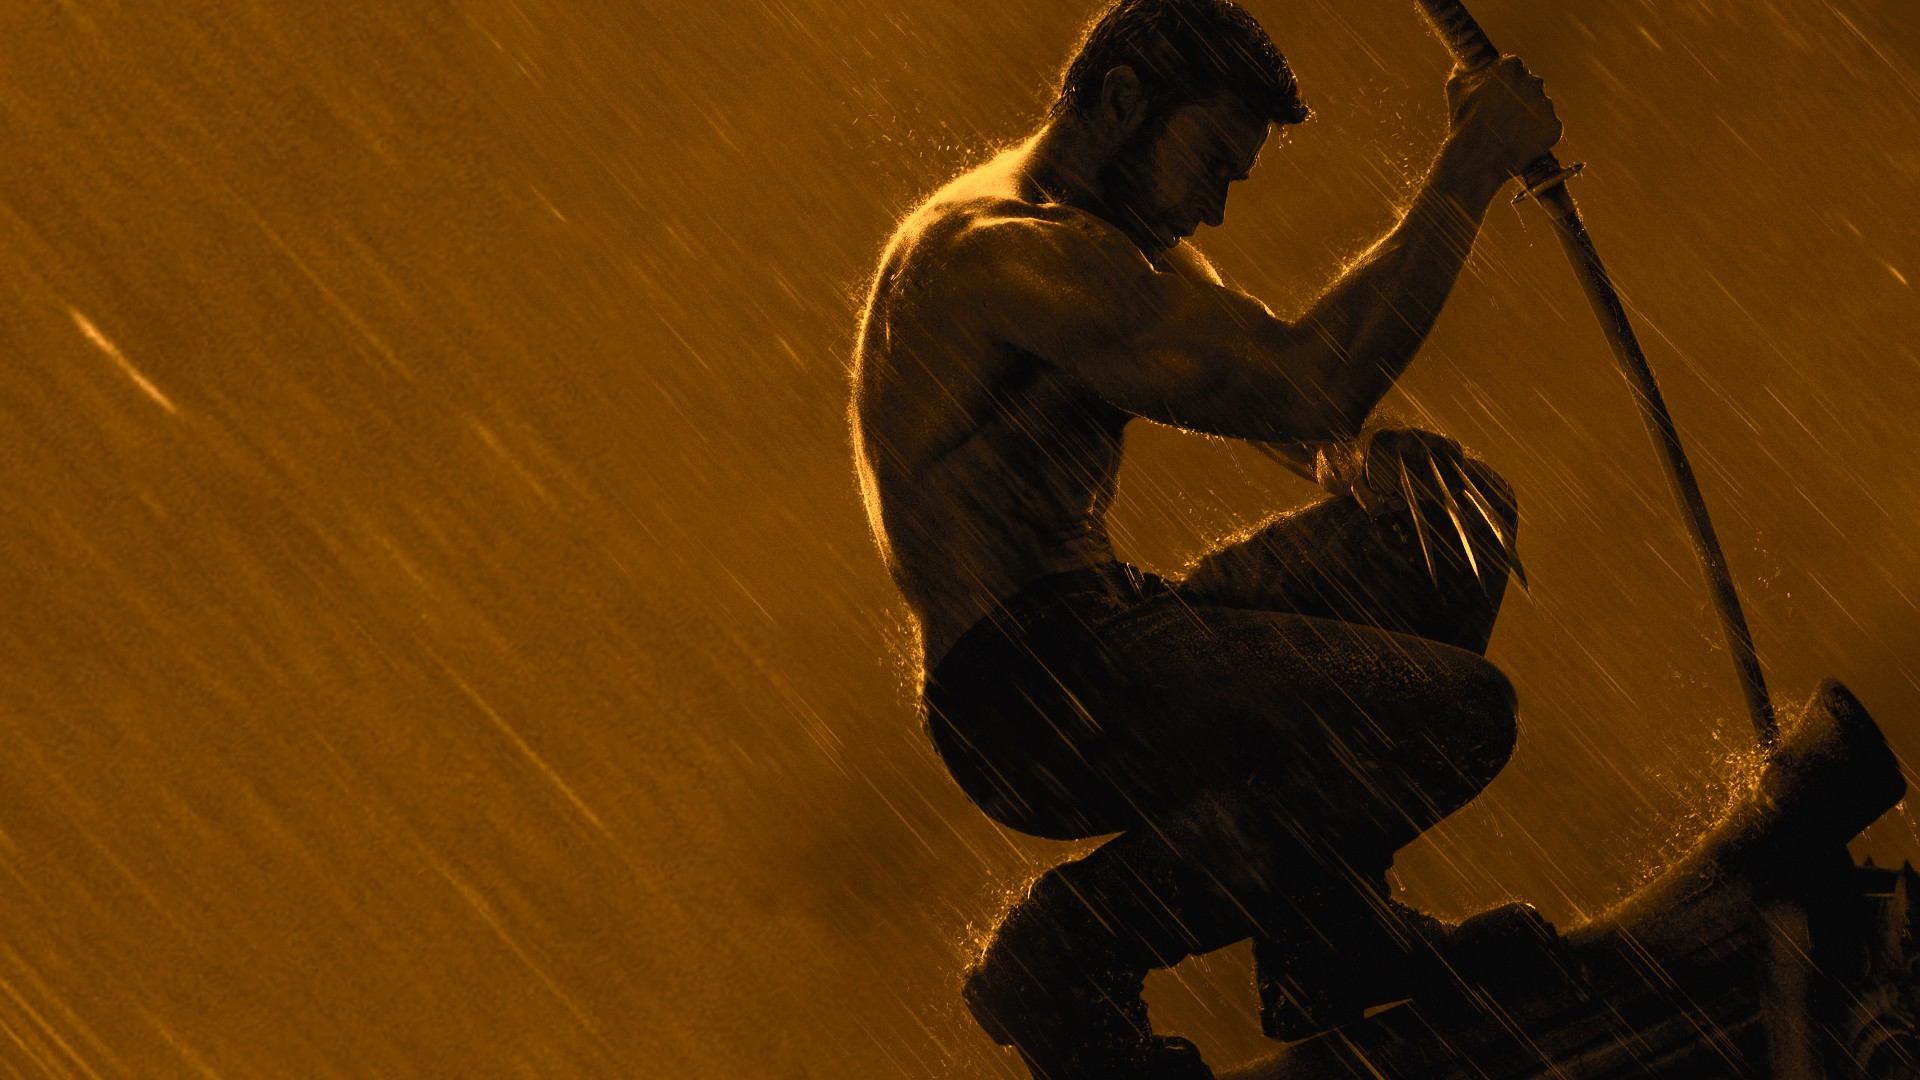 The Wolverine Awesome Hd Wallpapers All Hd Wallpapers